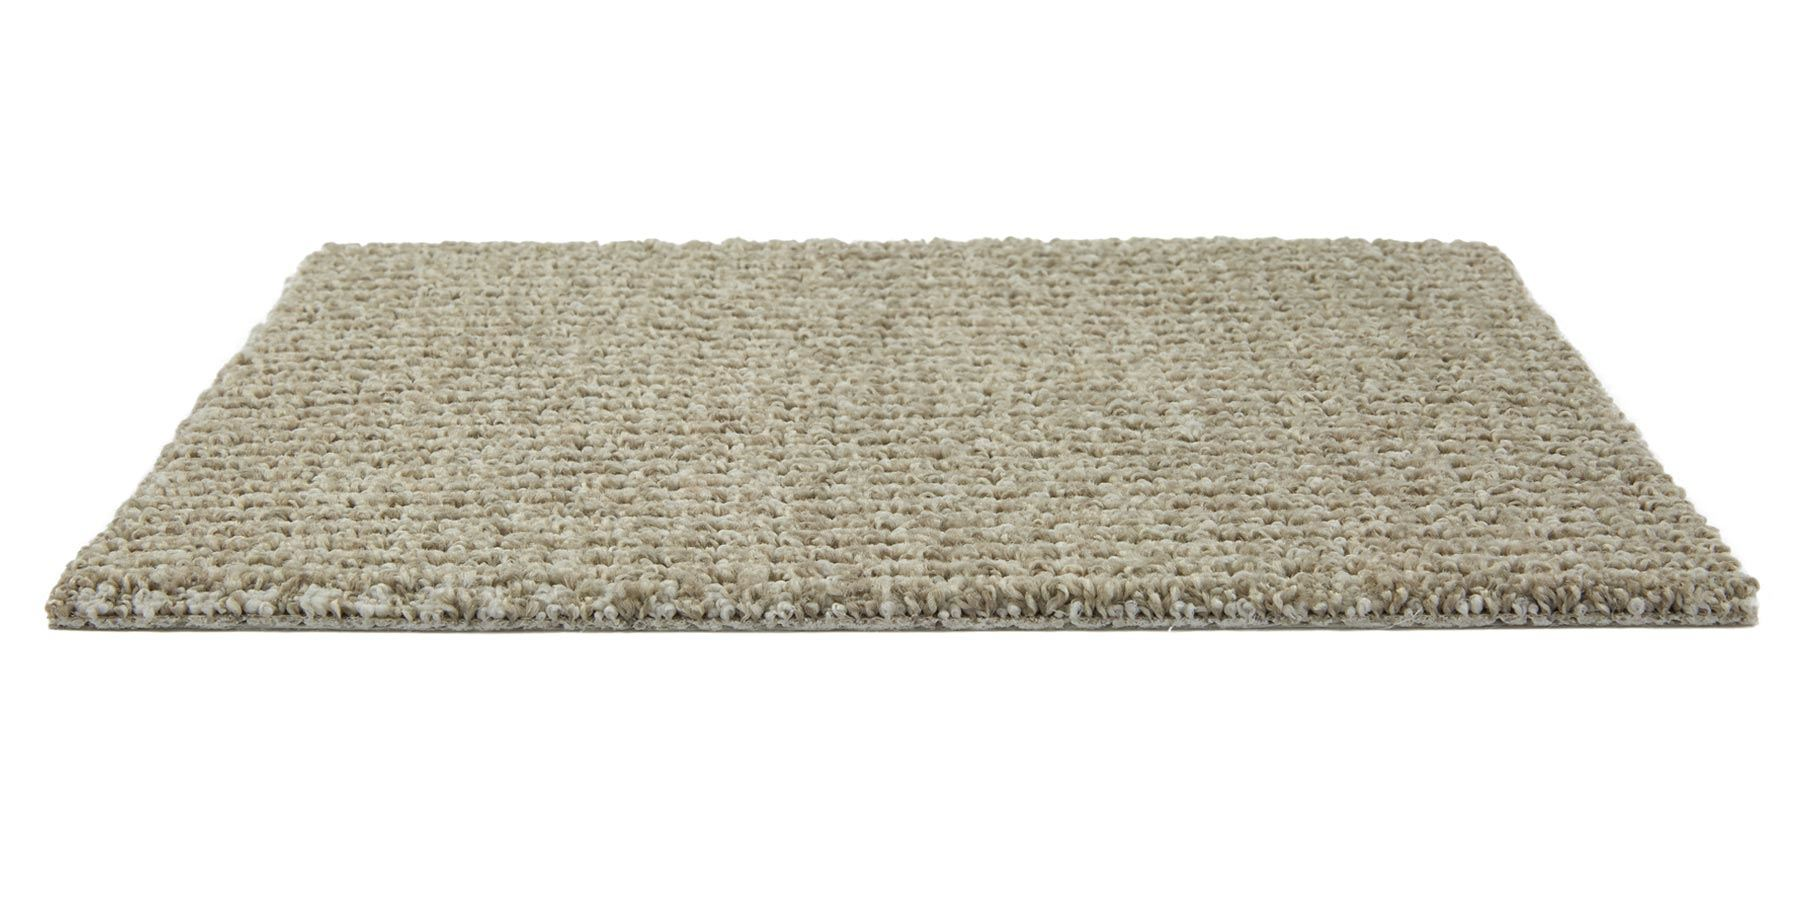 Big Time Sea Breeze Carpet